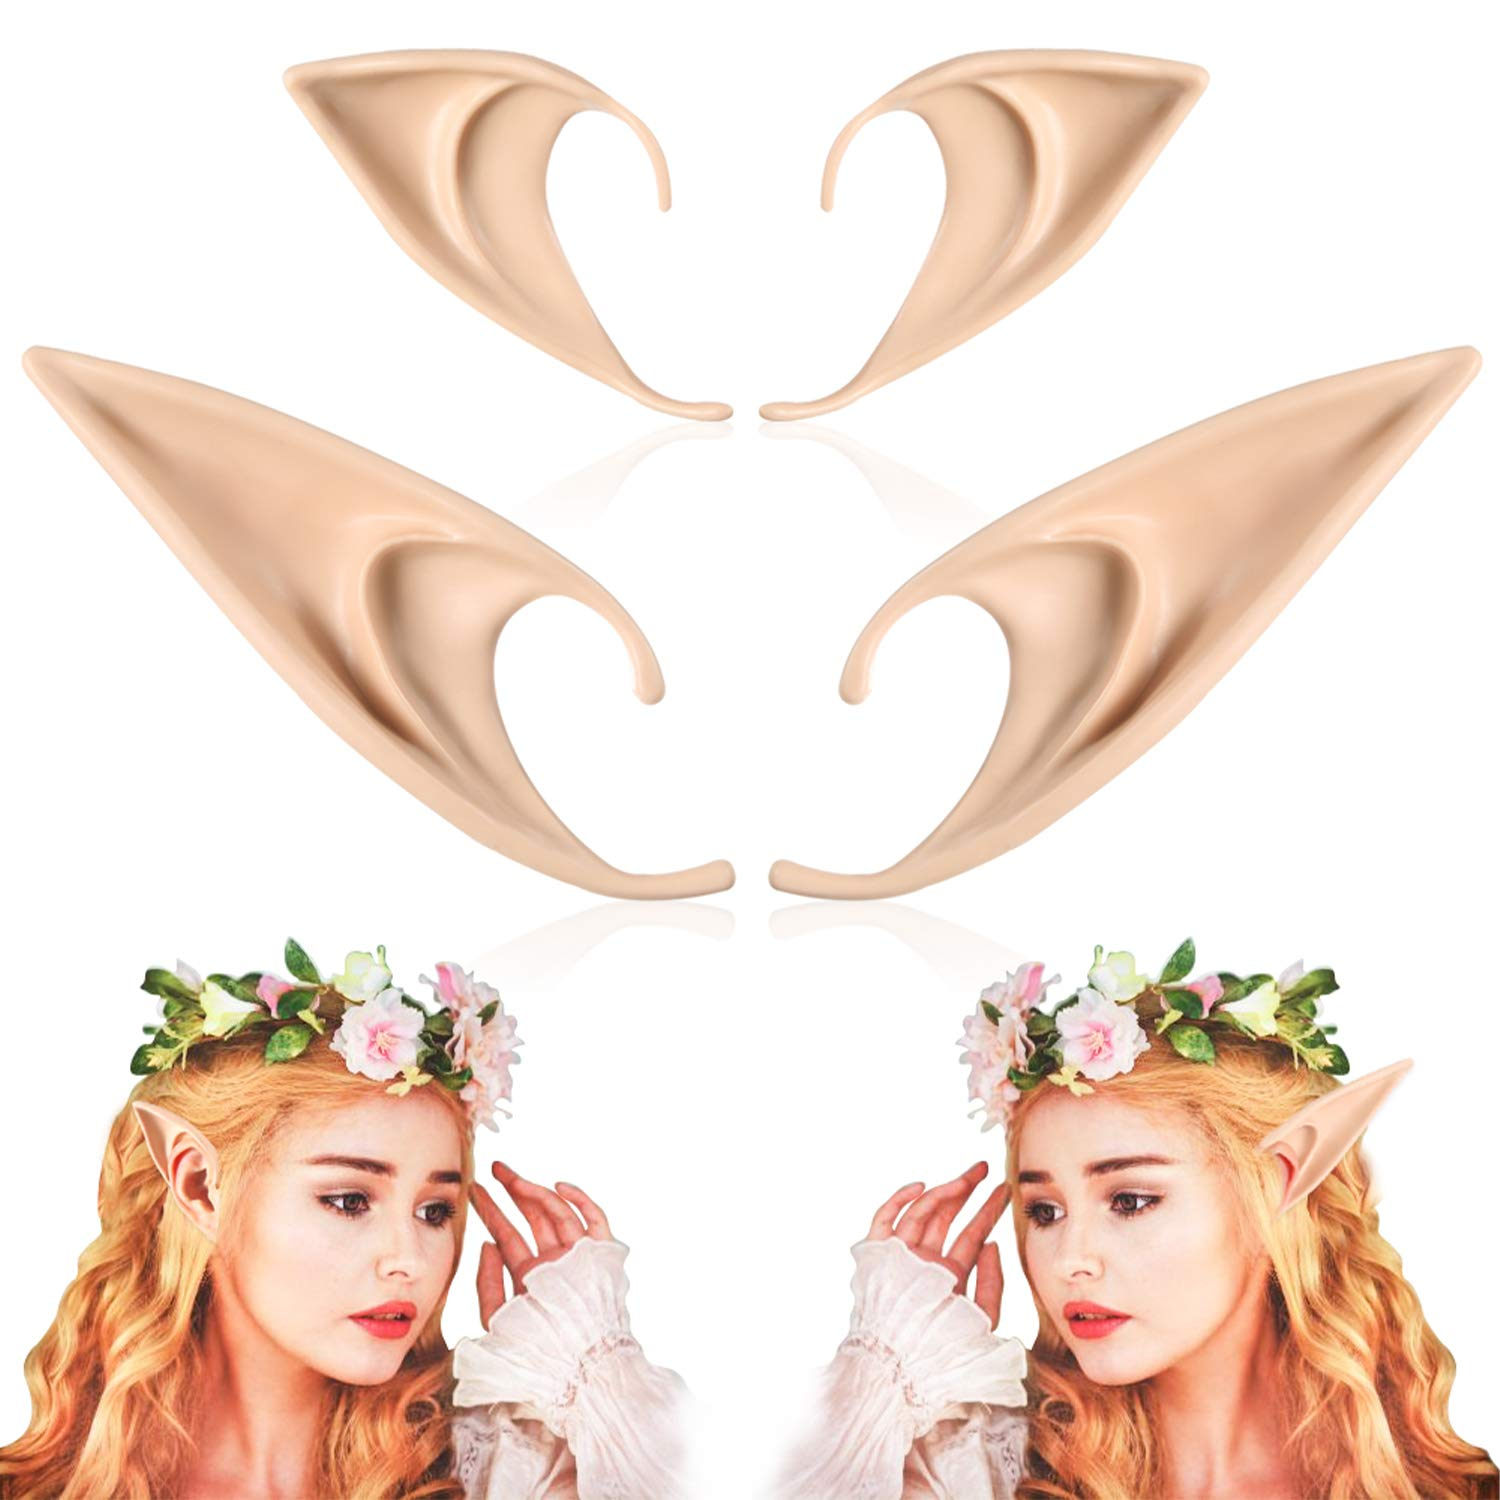 Skylety 4 Pieces Elf Ears 1 Piece Jewelry Head Chain 1 Piece Flower Wreath Headband for Halloween Party Props Dress Up Costume Cosplay Accessories